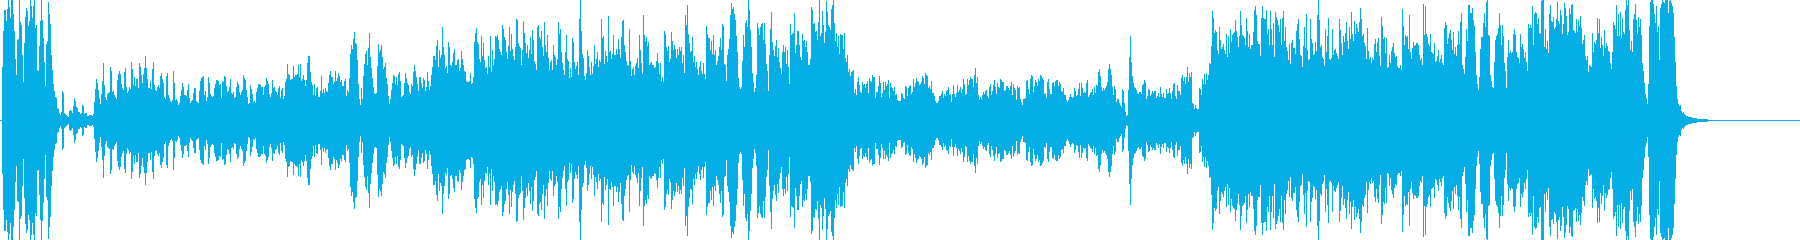 Elegant and Celebrity Orchestra Waltz's reproduced waveform